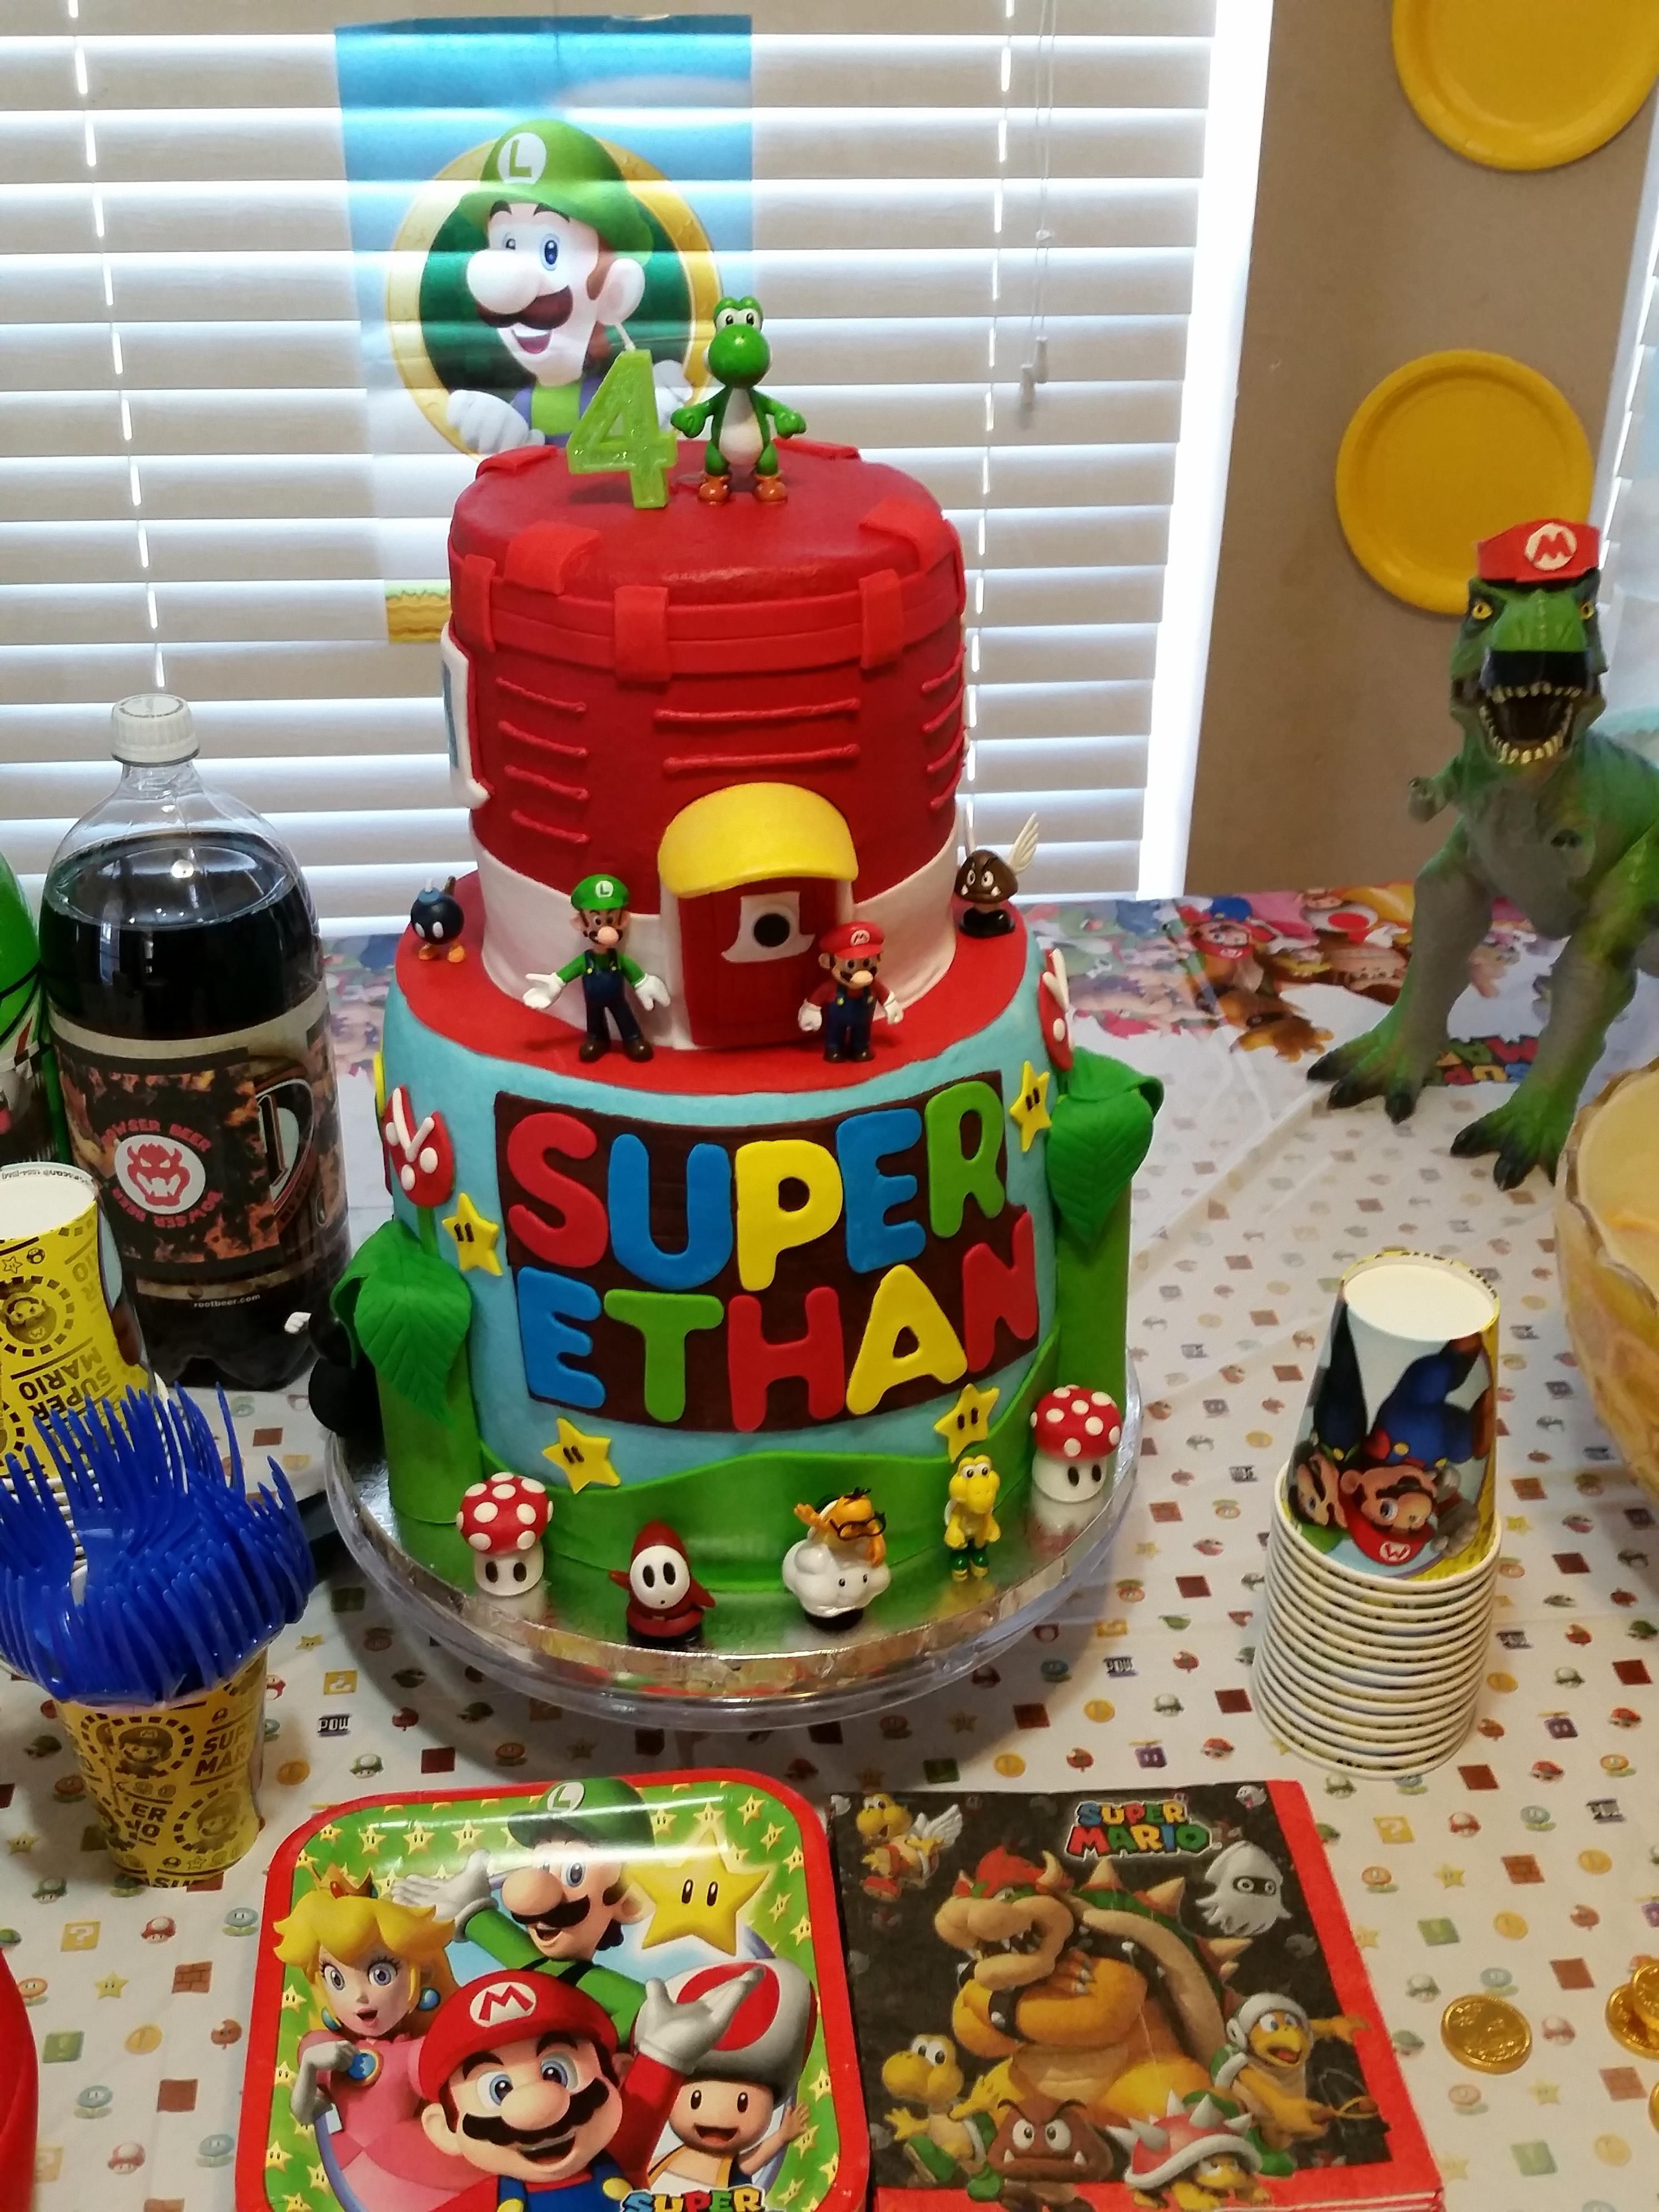 Today Is My Sons Birthday A Friend Made This Cake Because My Son